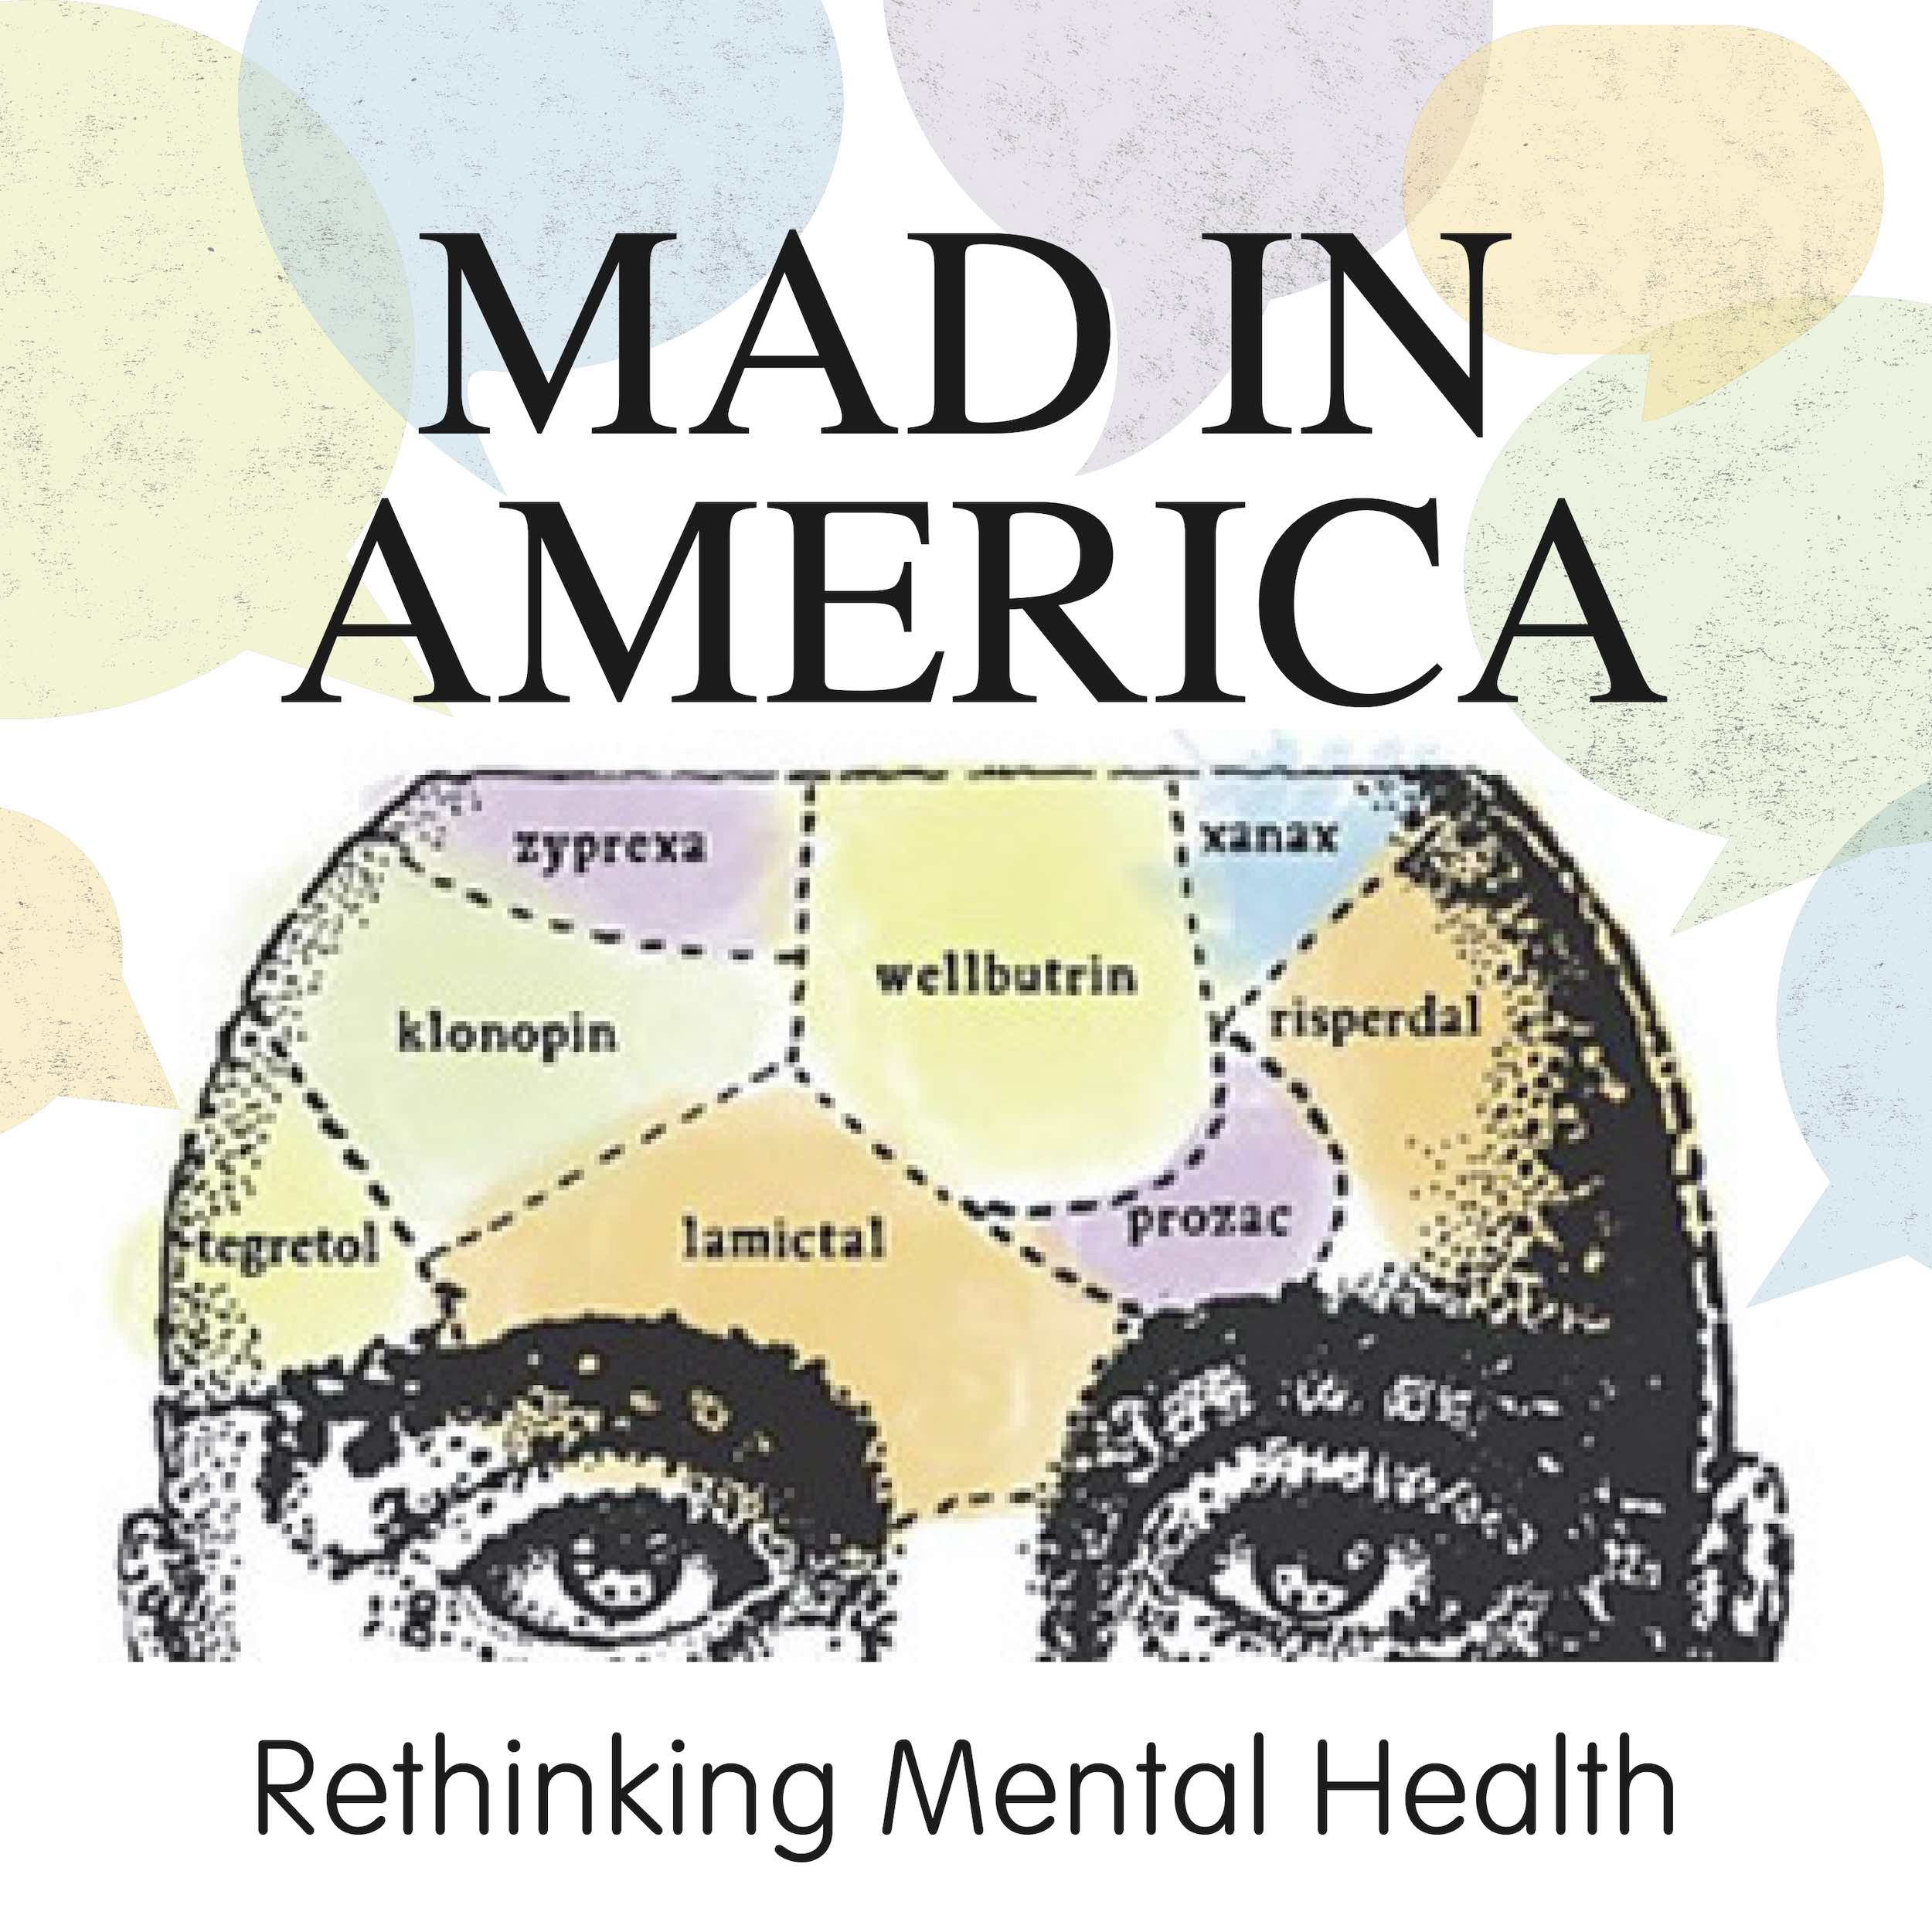 Mad in America: Rethinking Mental Health - Sarah Kamens and Peter Kinderman - Moving Mental Health Work Away From Diagnosis